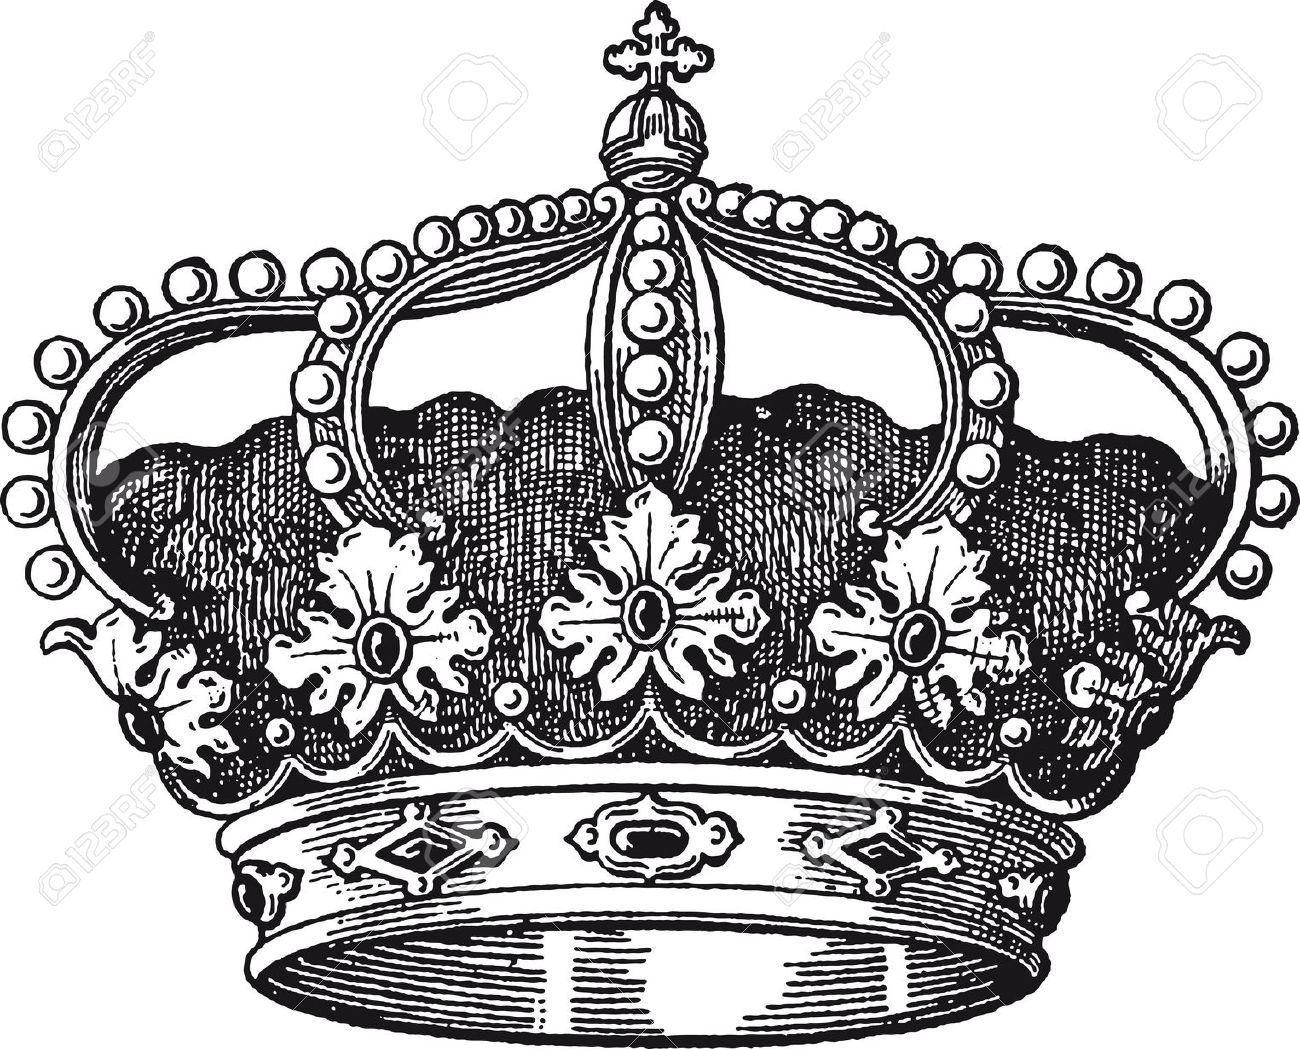 queen crown drawing google search tattoos pinterest draw queen crown and queen. Black Bedroom Furniture Sets. Home Design Ideas